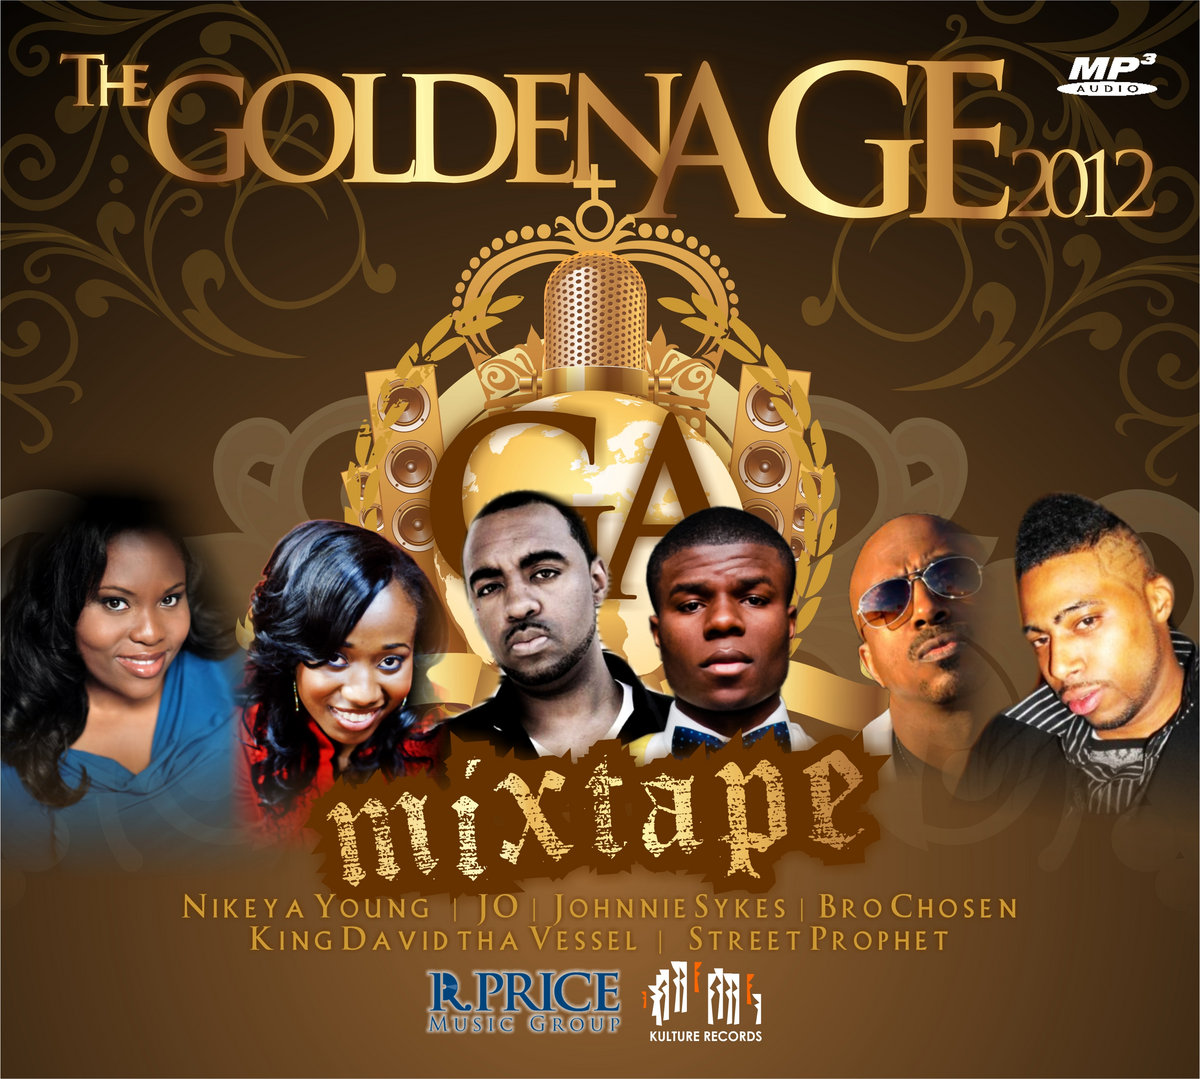 GA2012: The Golden Age Mixtape | R Price Music Group